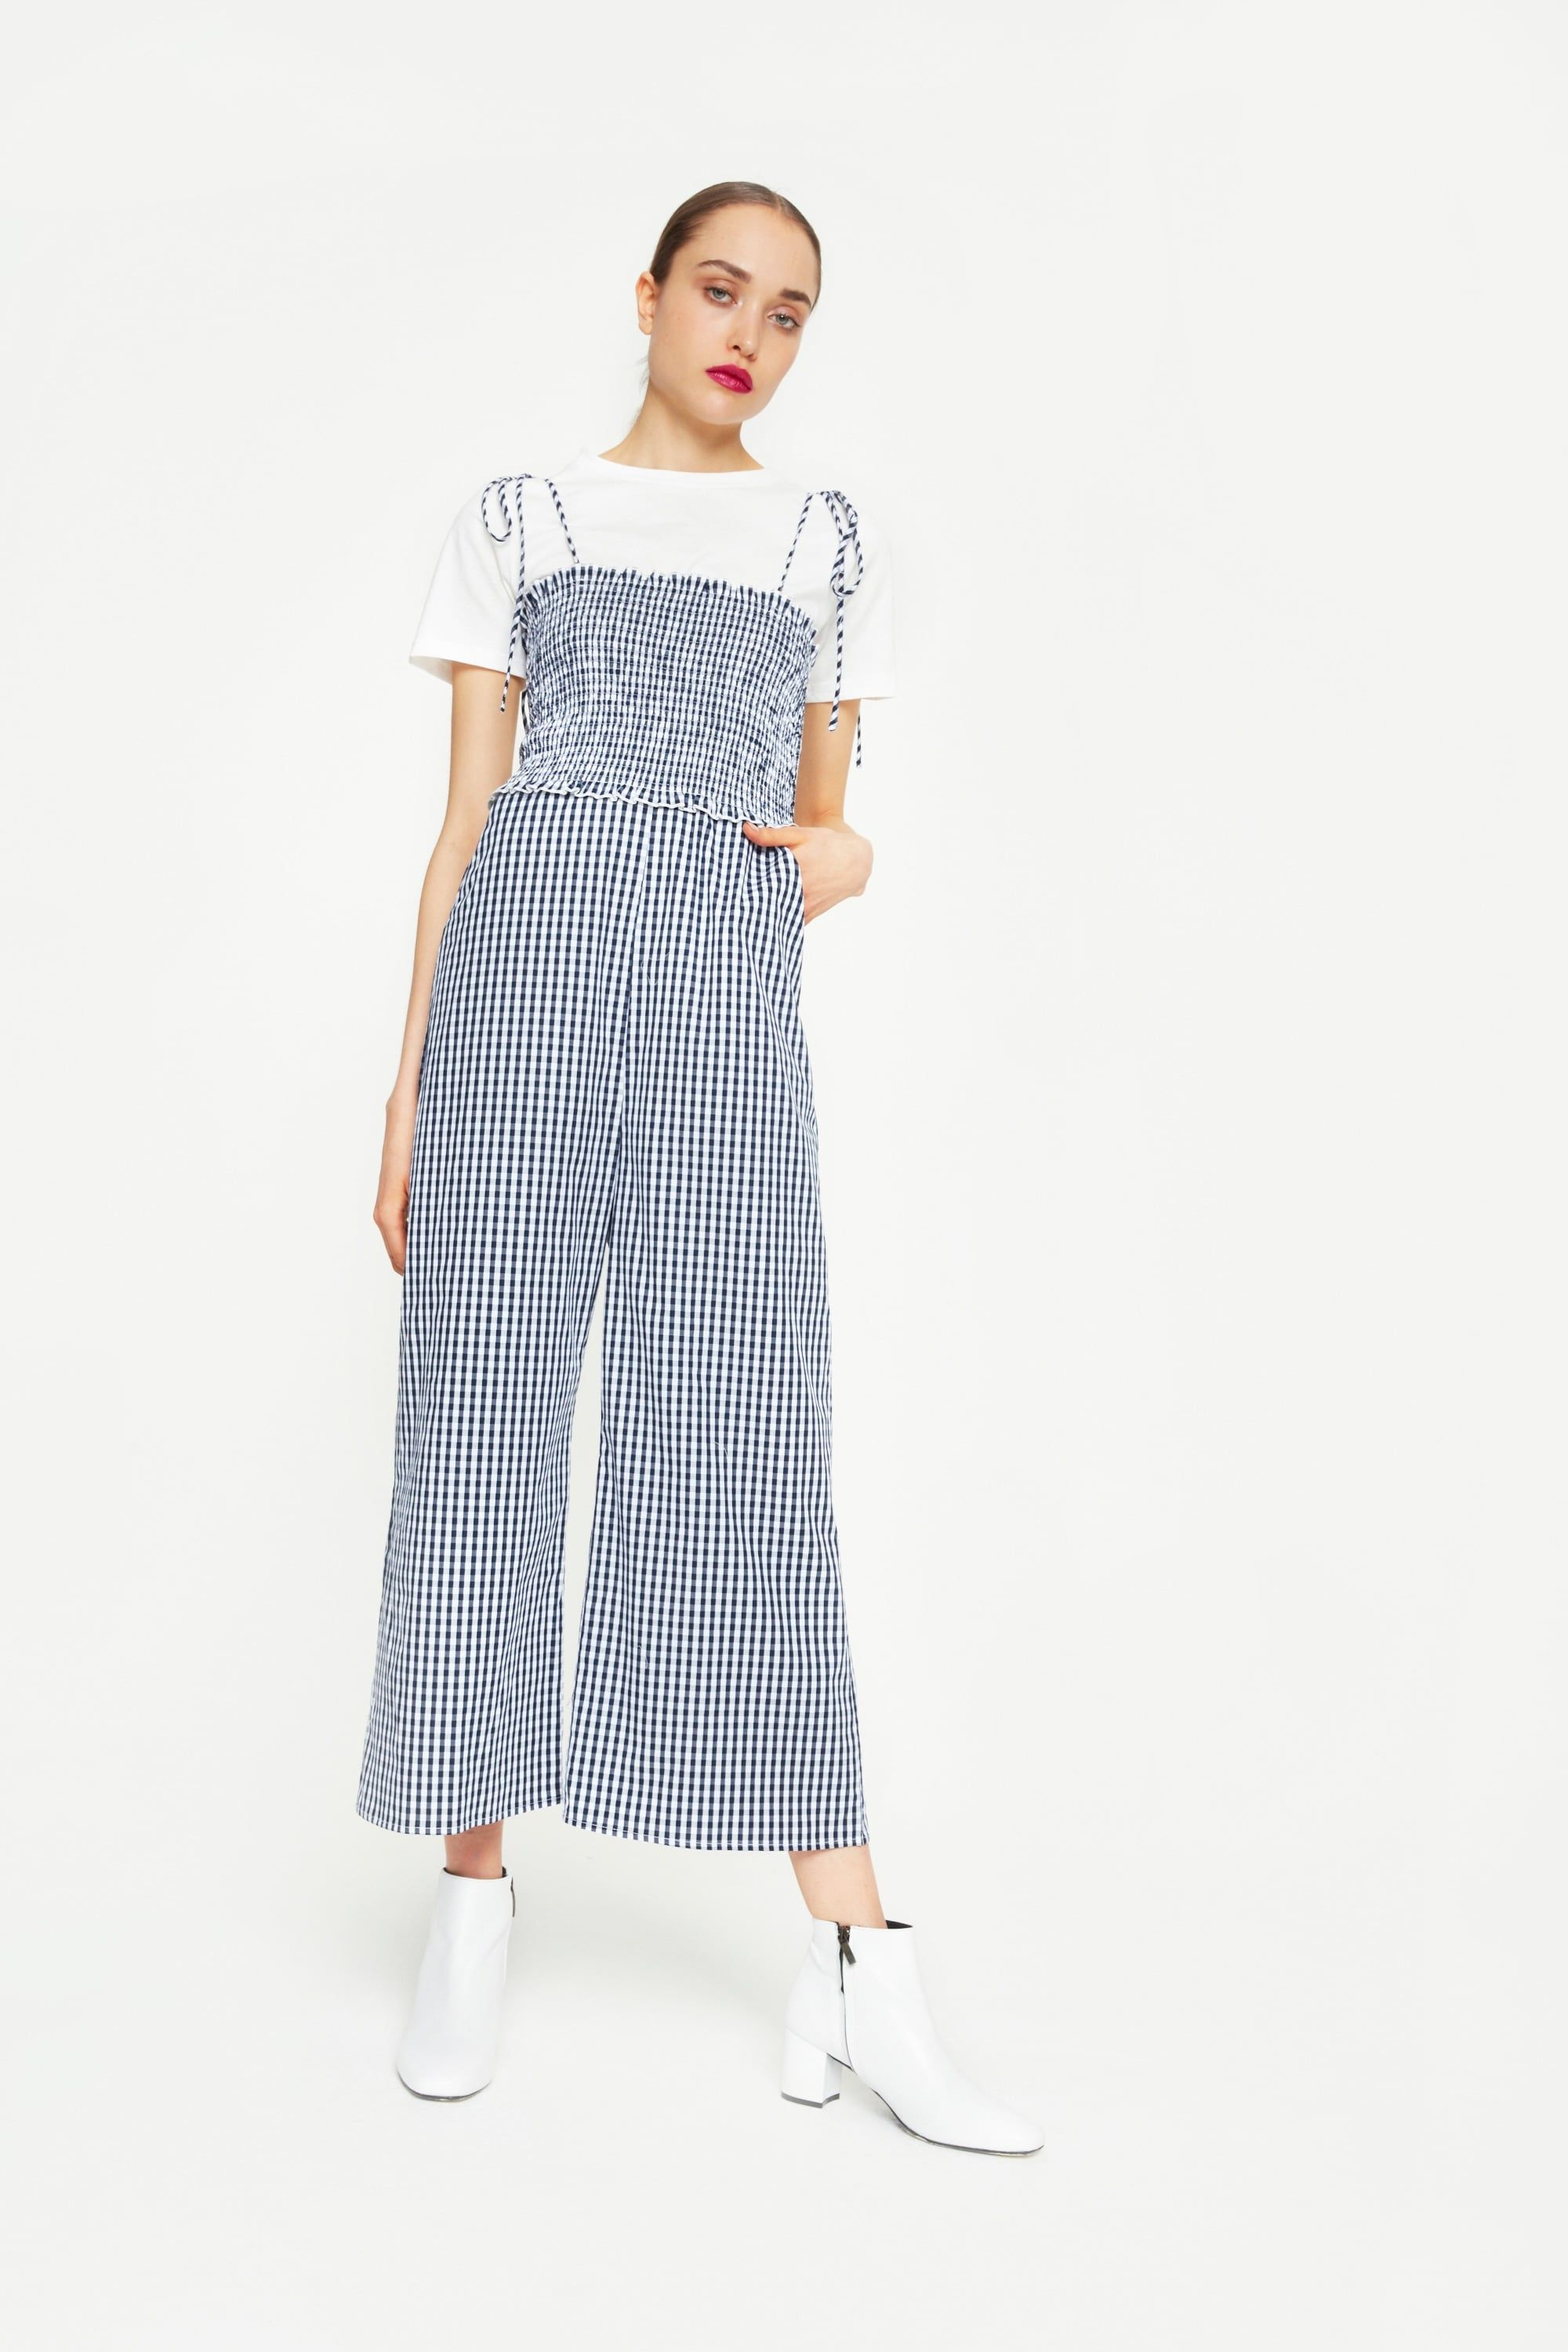 0818bd6b4a8b English Factory Gingham Jumpsuit With T-Shirt Underlay | Like the ...